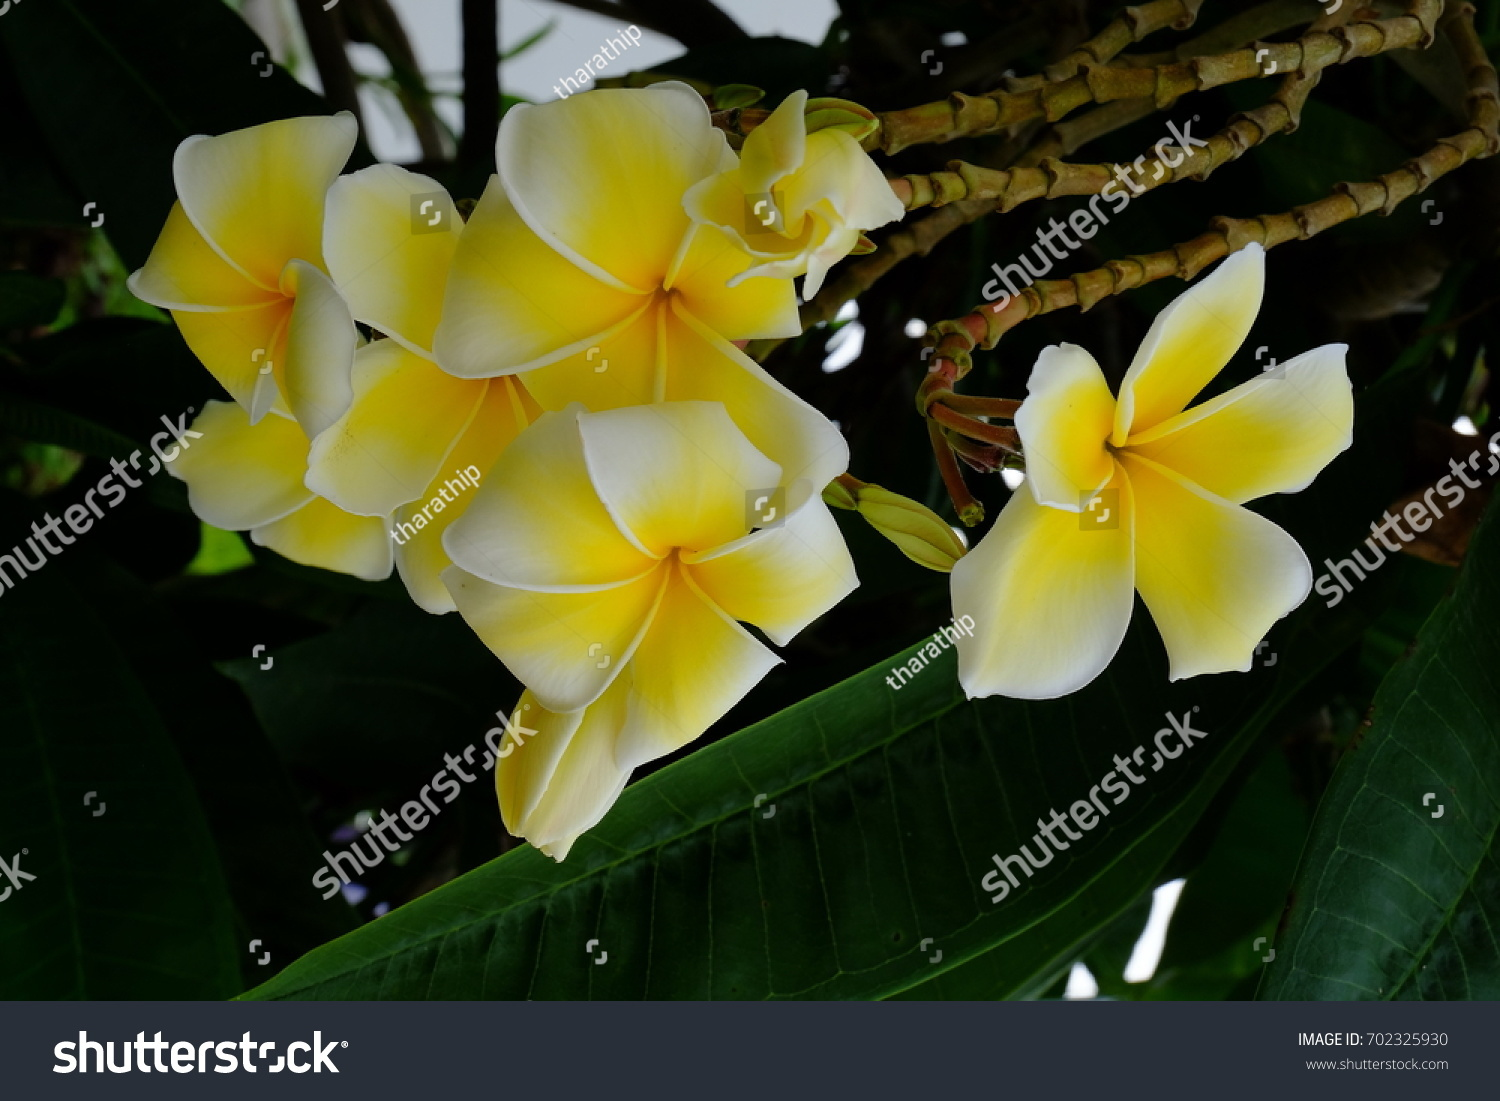 Beautiful Yellow Flowers With Green Leaf Bushautiful White And